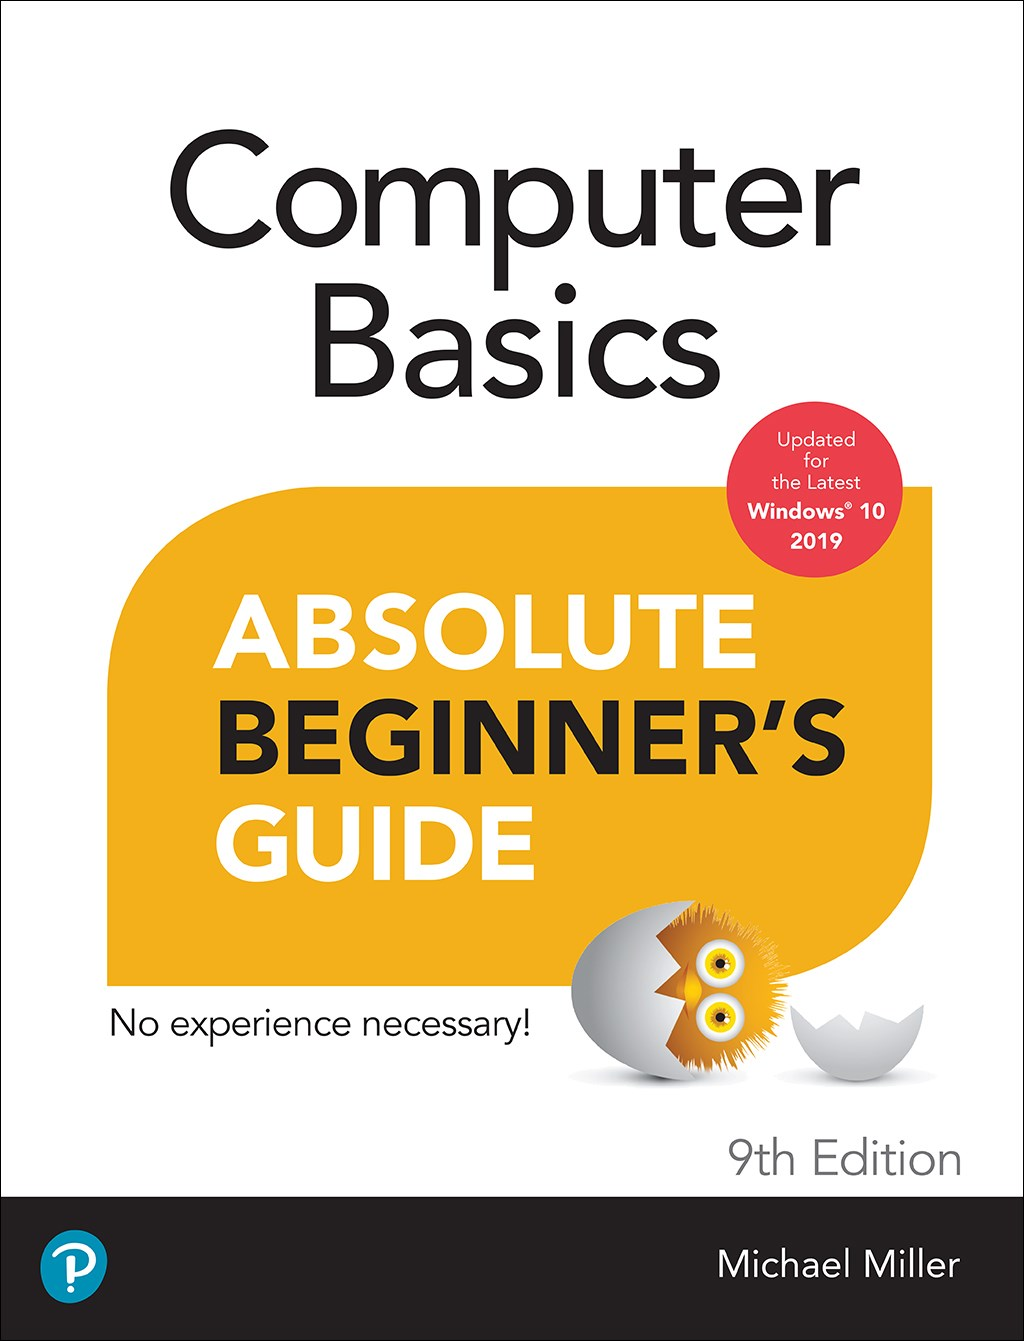 Computer Basics Absolute Beginner's Guide, Windows 10 Edition, 9th Edition